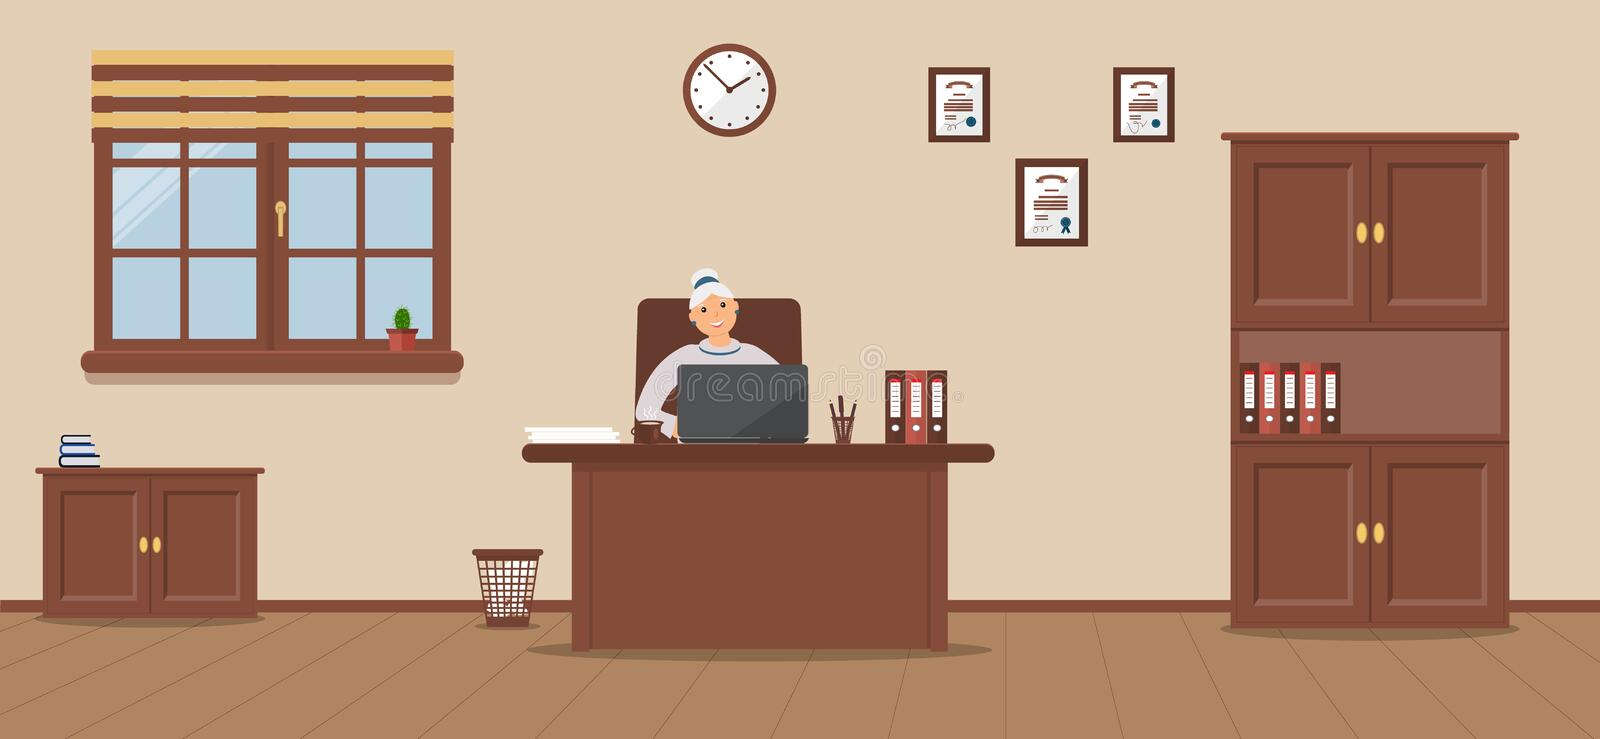 An elderly woman sitting in the workplace in a spacious office on a cream background. Vector illustration.Table, wardrobe, diplomas. It`s snowing outside vector illustration